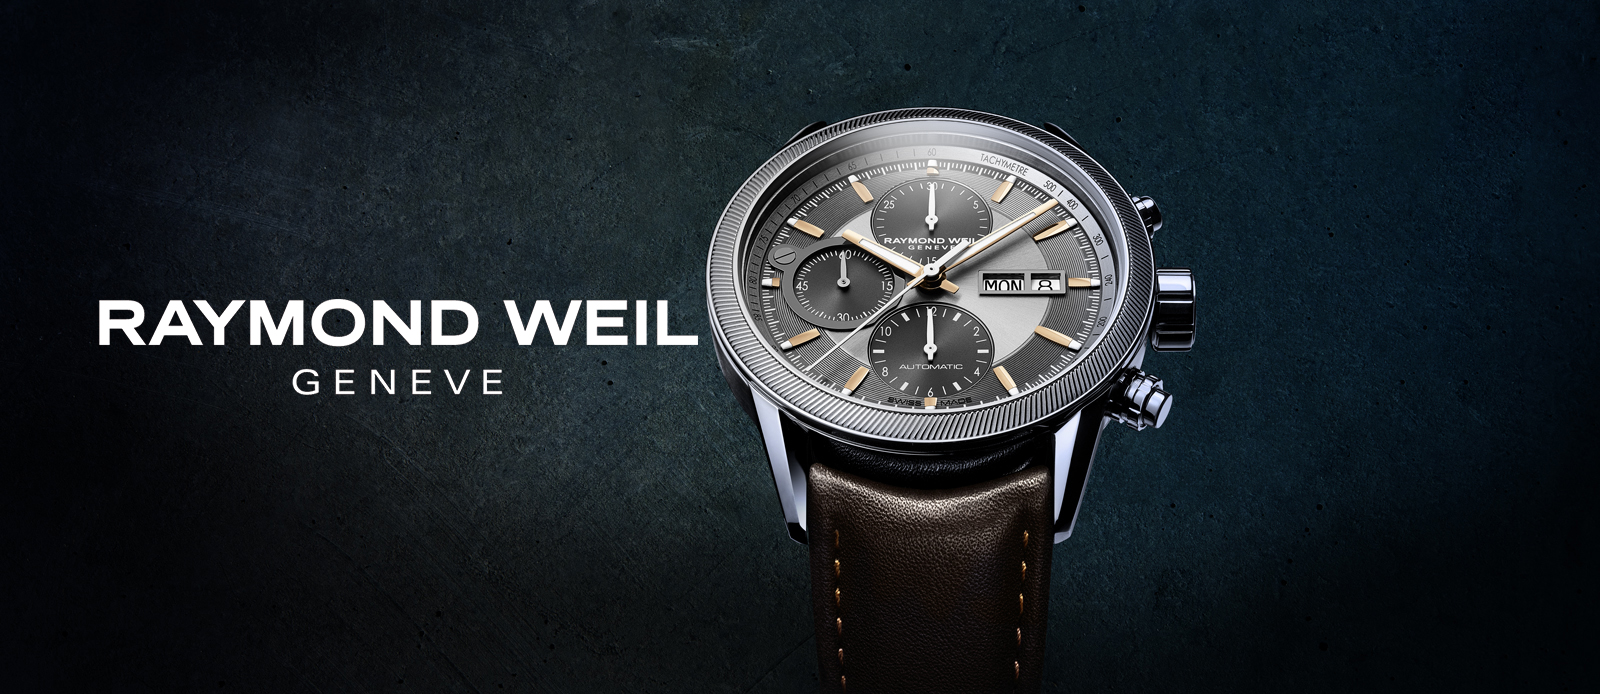 raymond weil watches highlands ranch, denver co